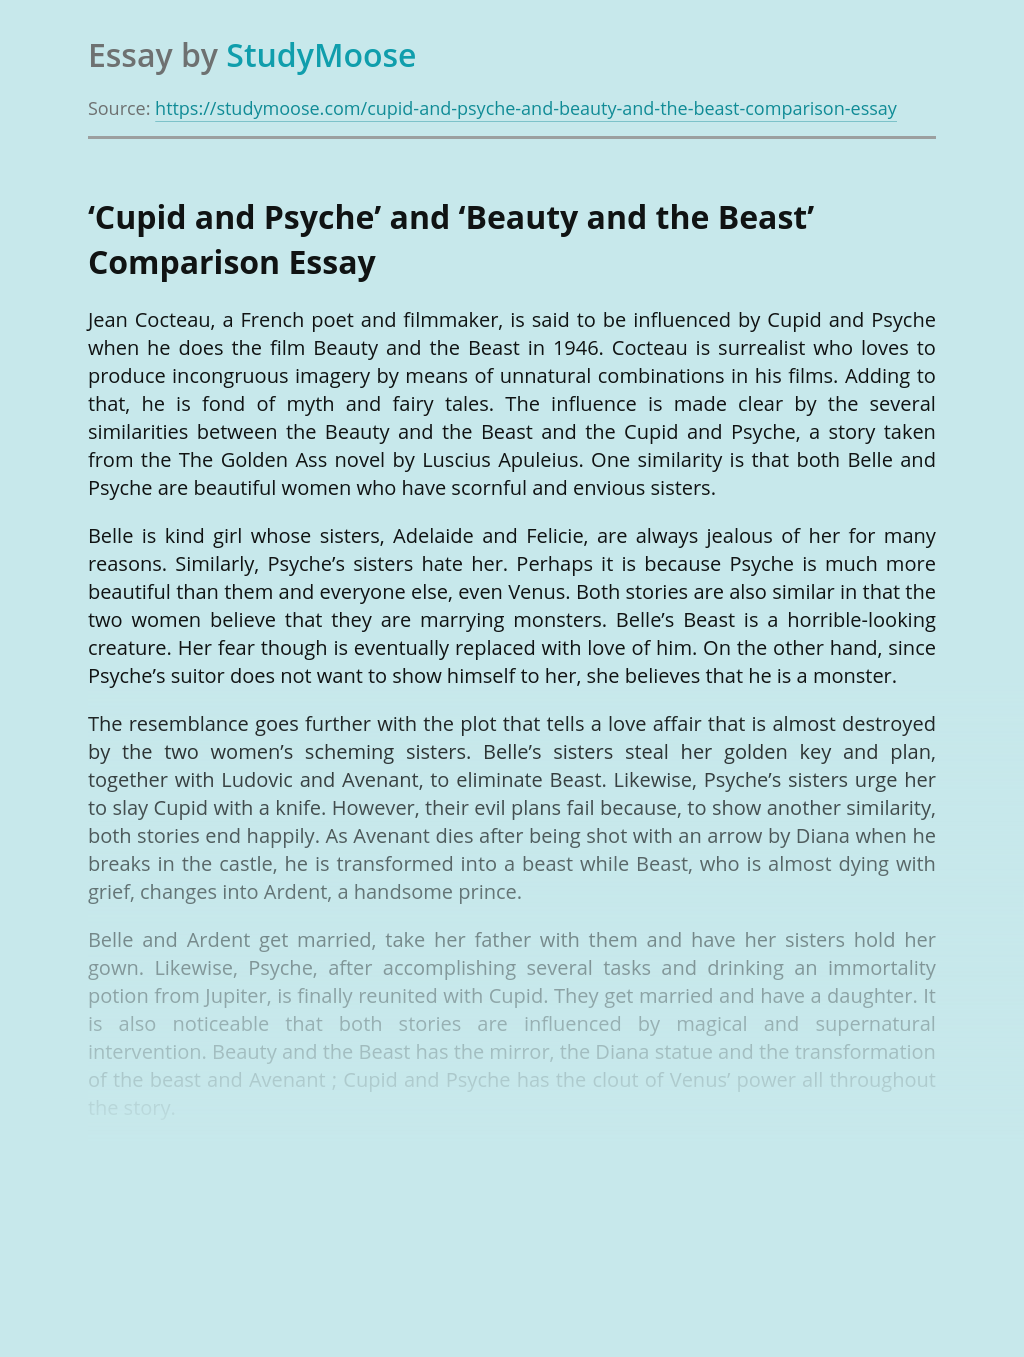 'Cupid and Psyche' and 'Beauty and the Beast' Comparison